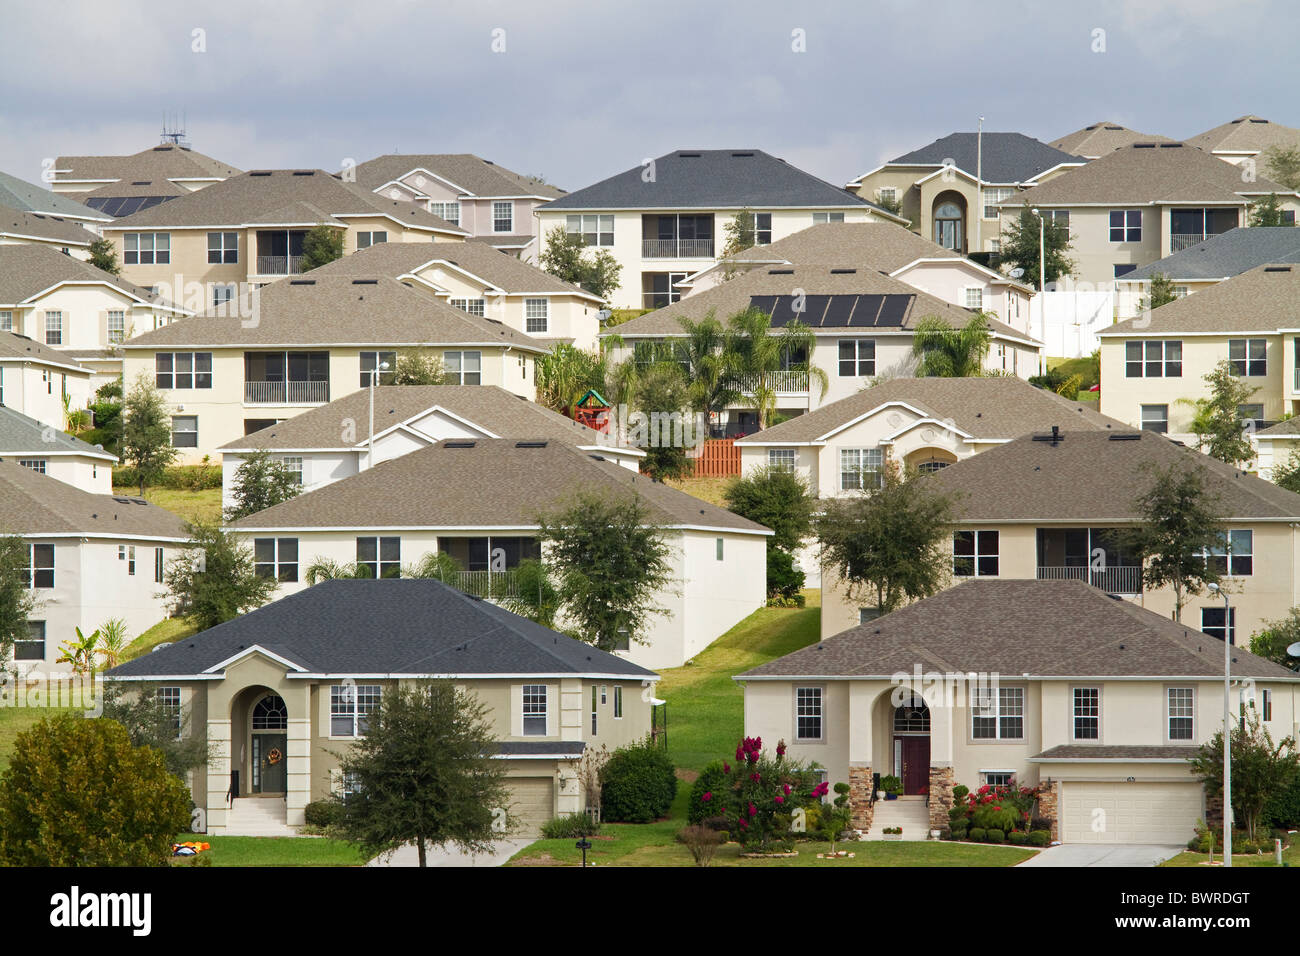 Solar panels on Florida urban neighborhood including house with solar panels and many houses. - Stock Image